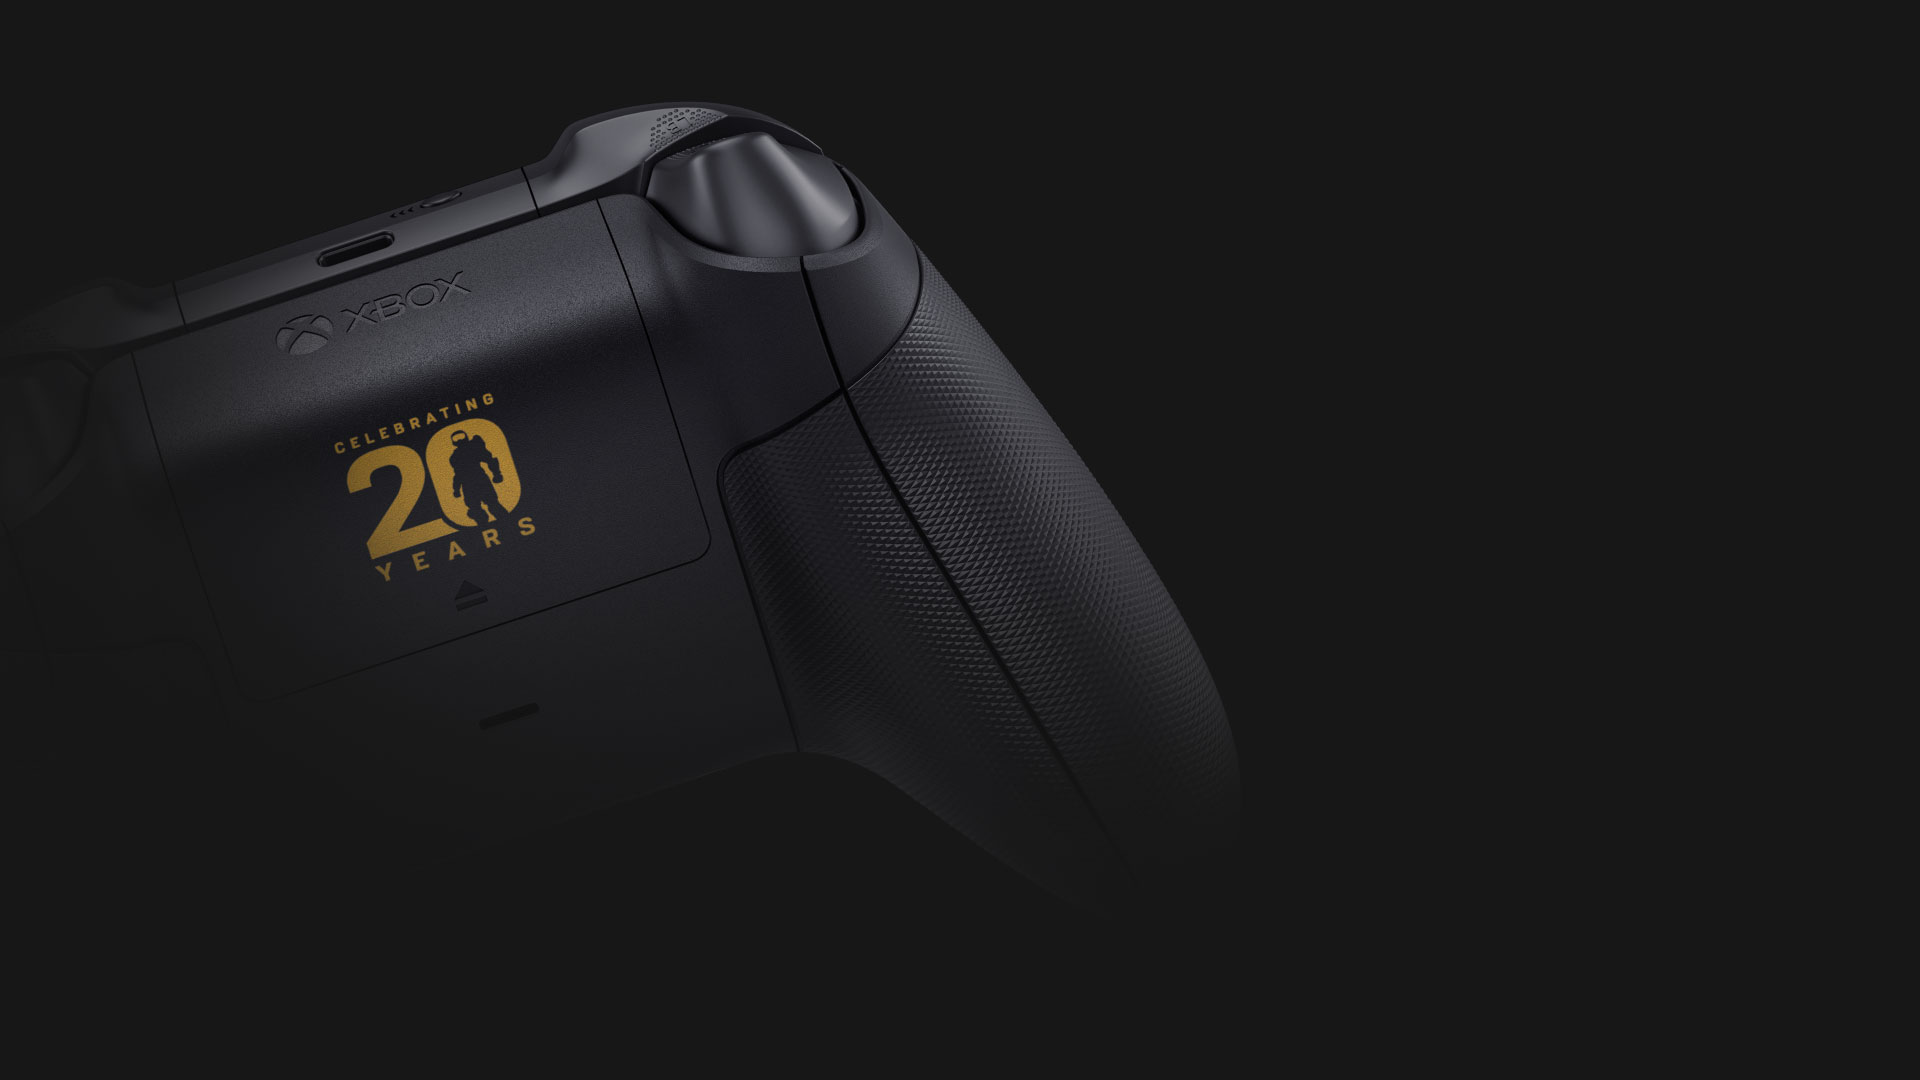 Halo Infinite Limited Edition Xbox Wireless Controller